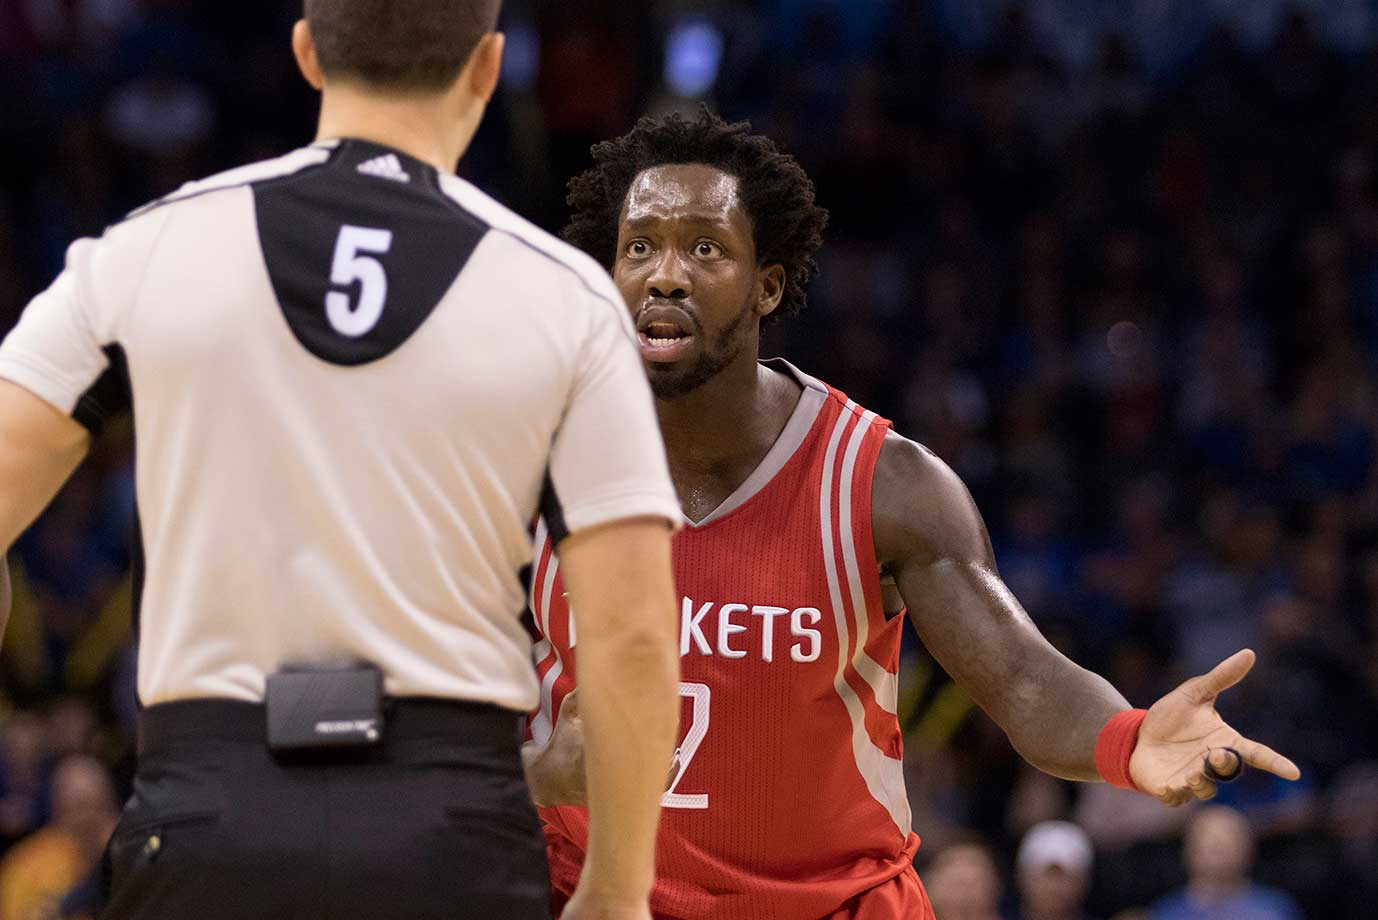 Patrick Beverley of the Houston Rockets argues he did not commit a foul to referee Kane Fitzgerald during a game at the Chesapeake Energy Arena in Oklahoma City.